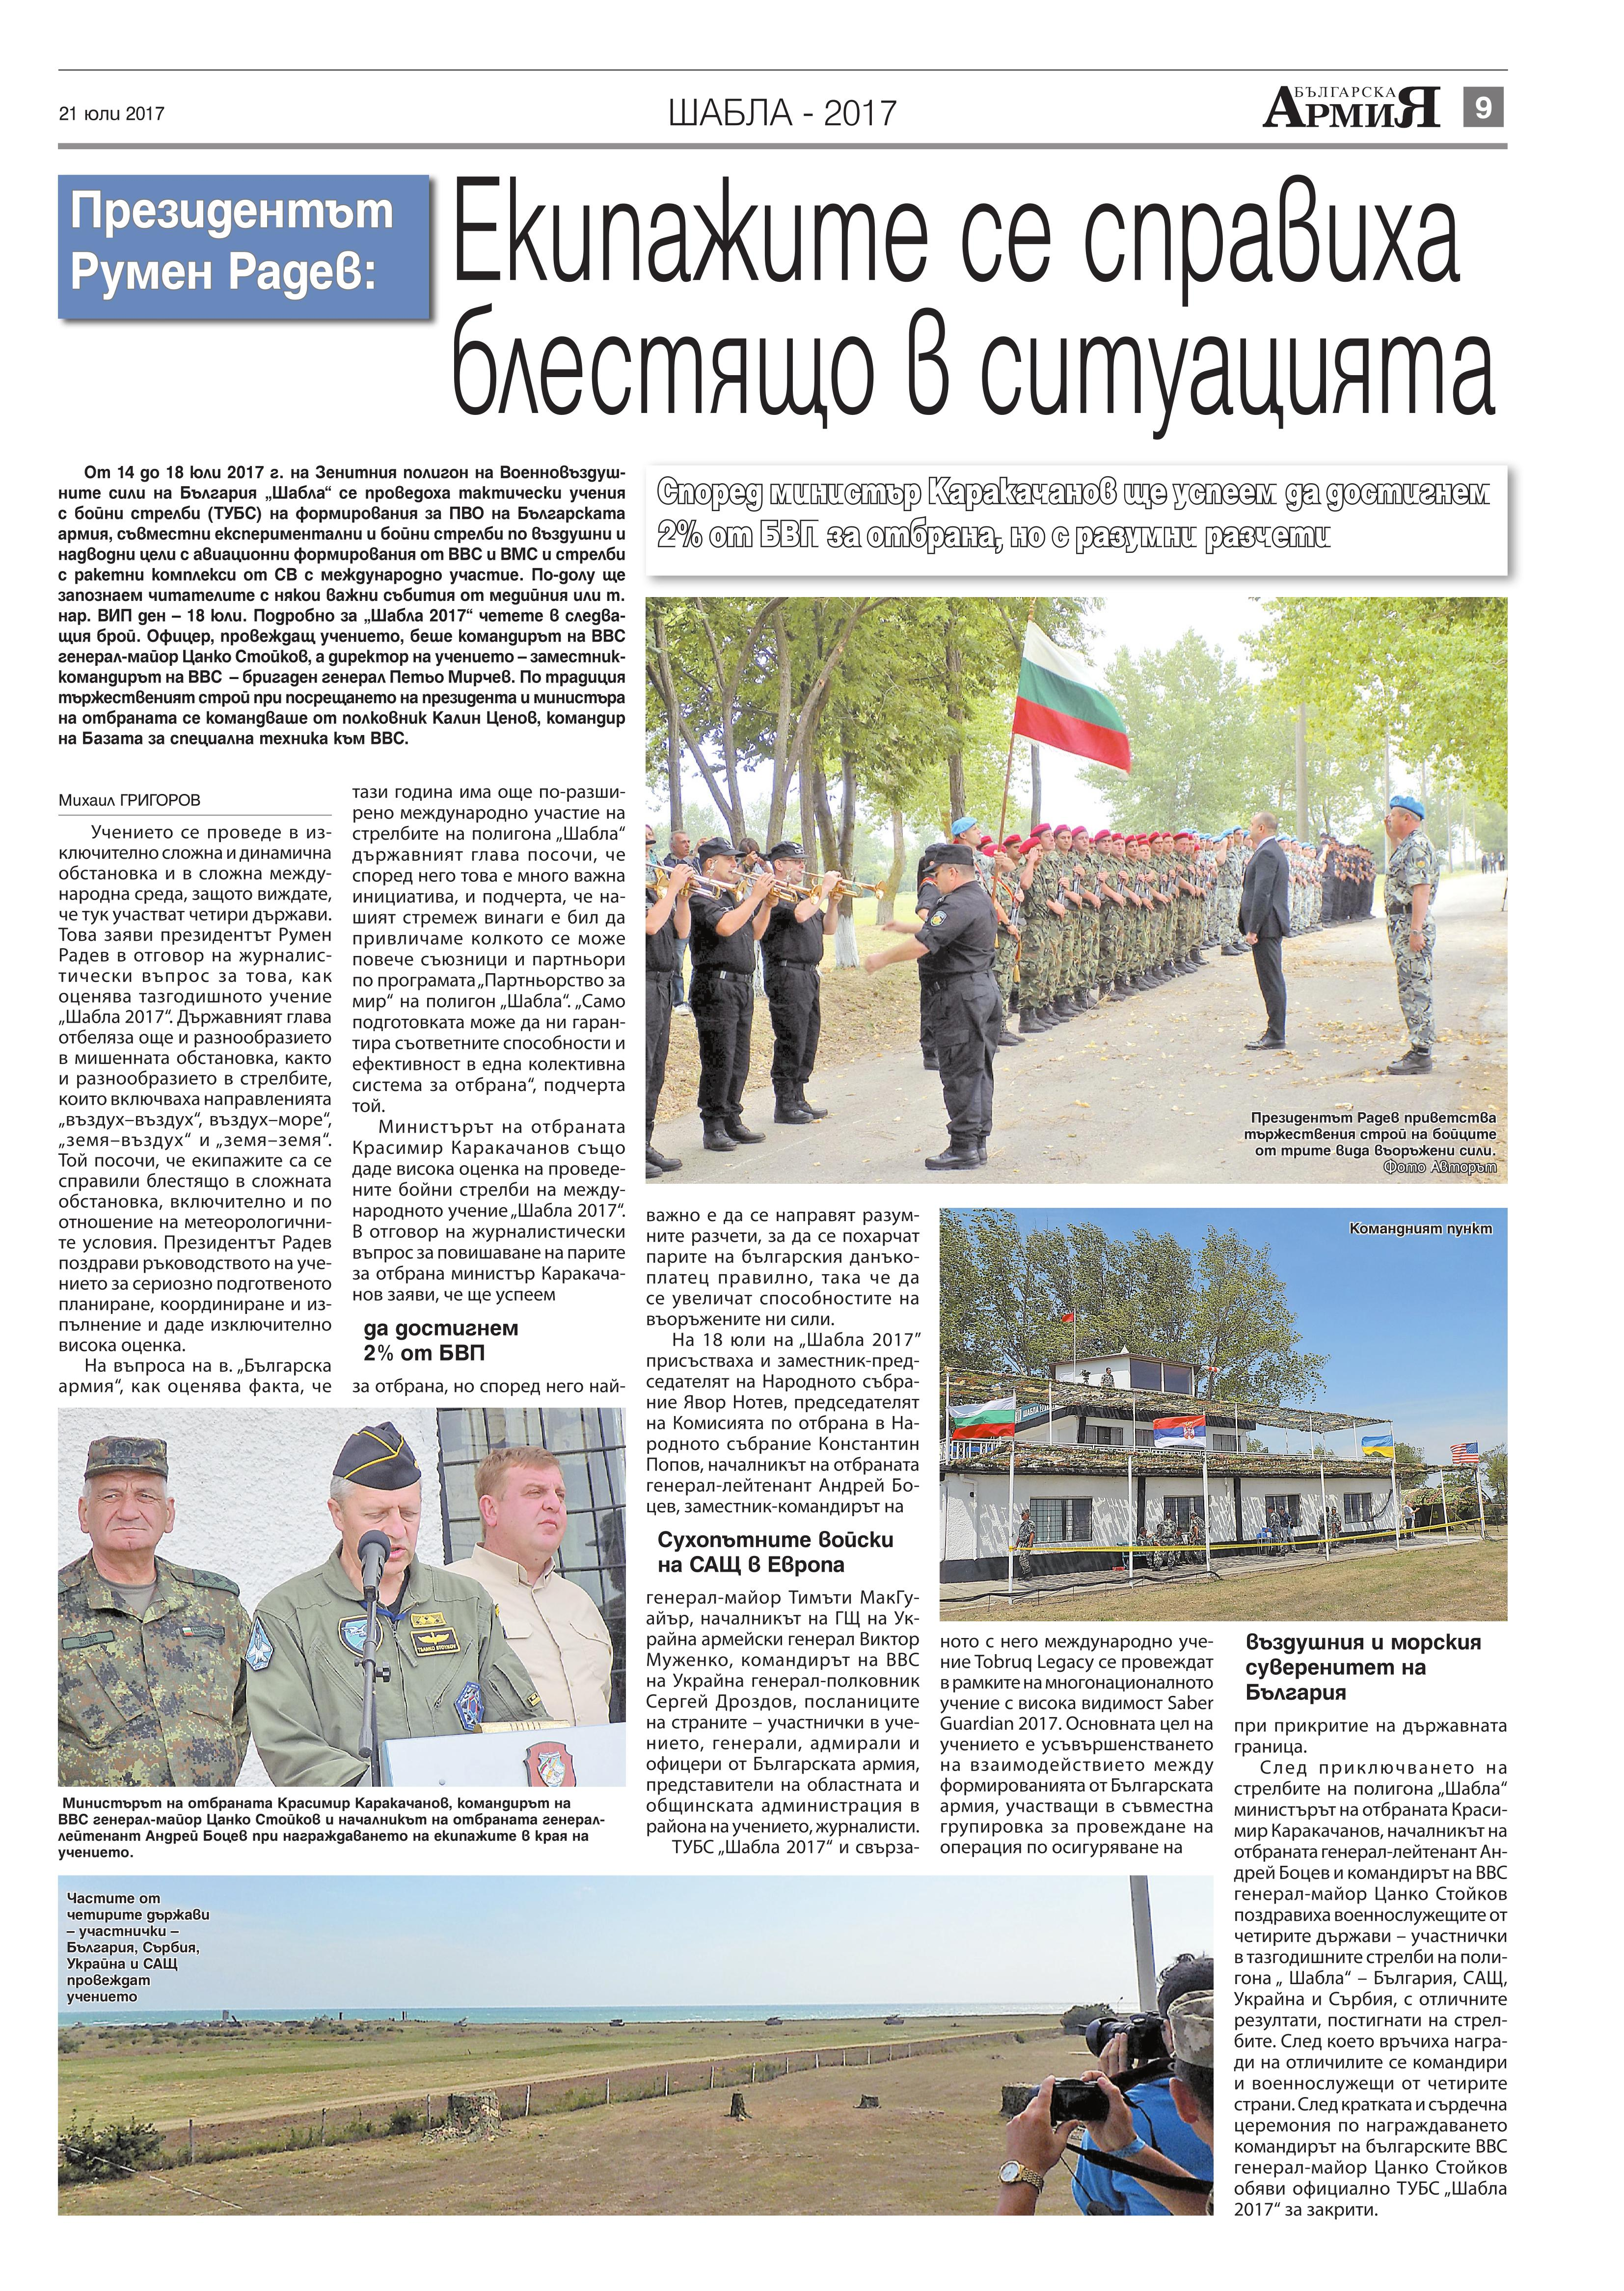 https://www.armymedia.bg/wp-content/uploads/2015/06/09.page1_-26.jpg